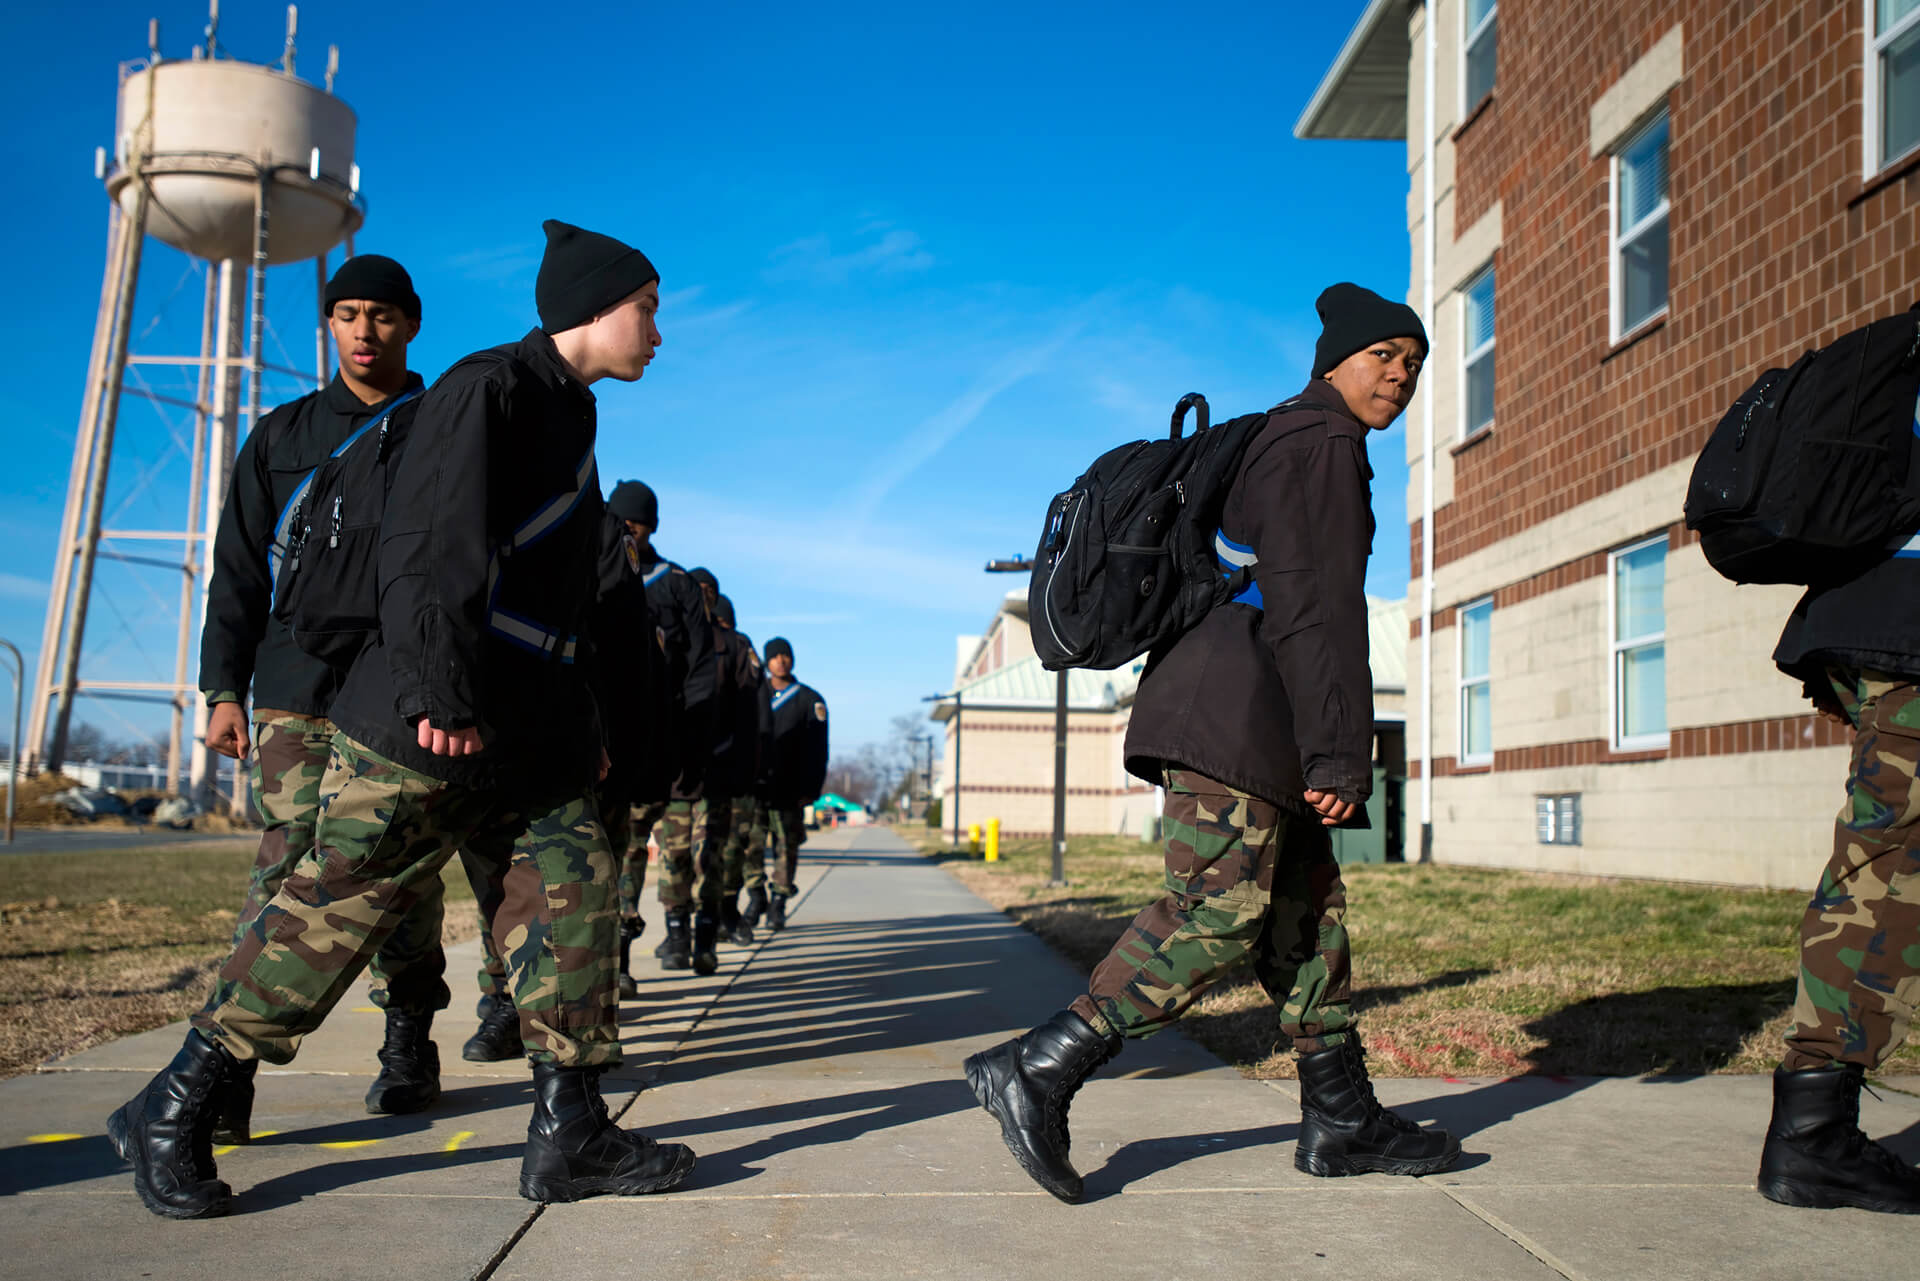 Cadets march single file into the academy's classroom building to begin the school day.